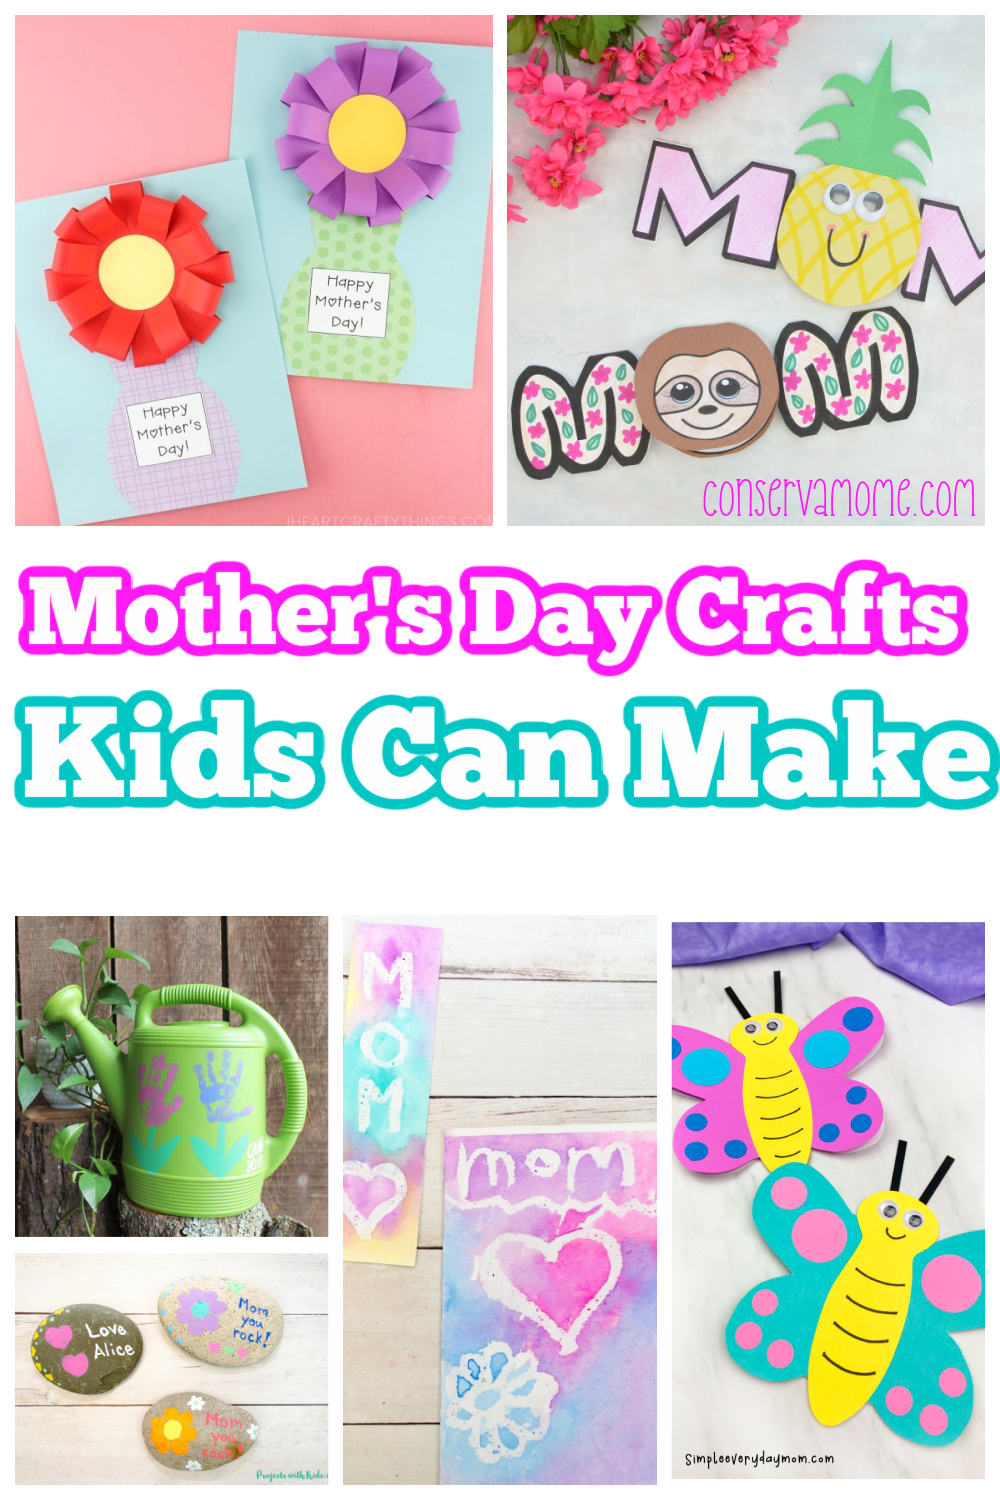 Mother's Day Crafts Kids can make